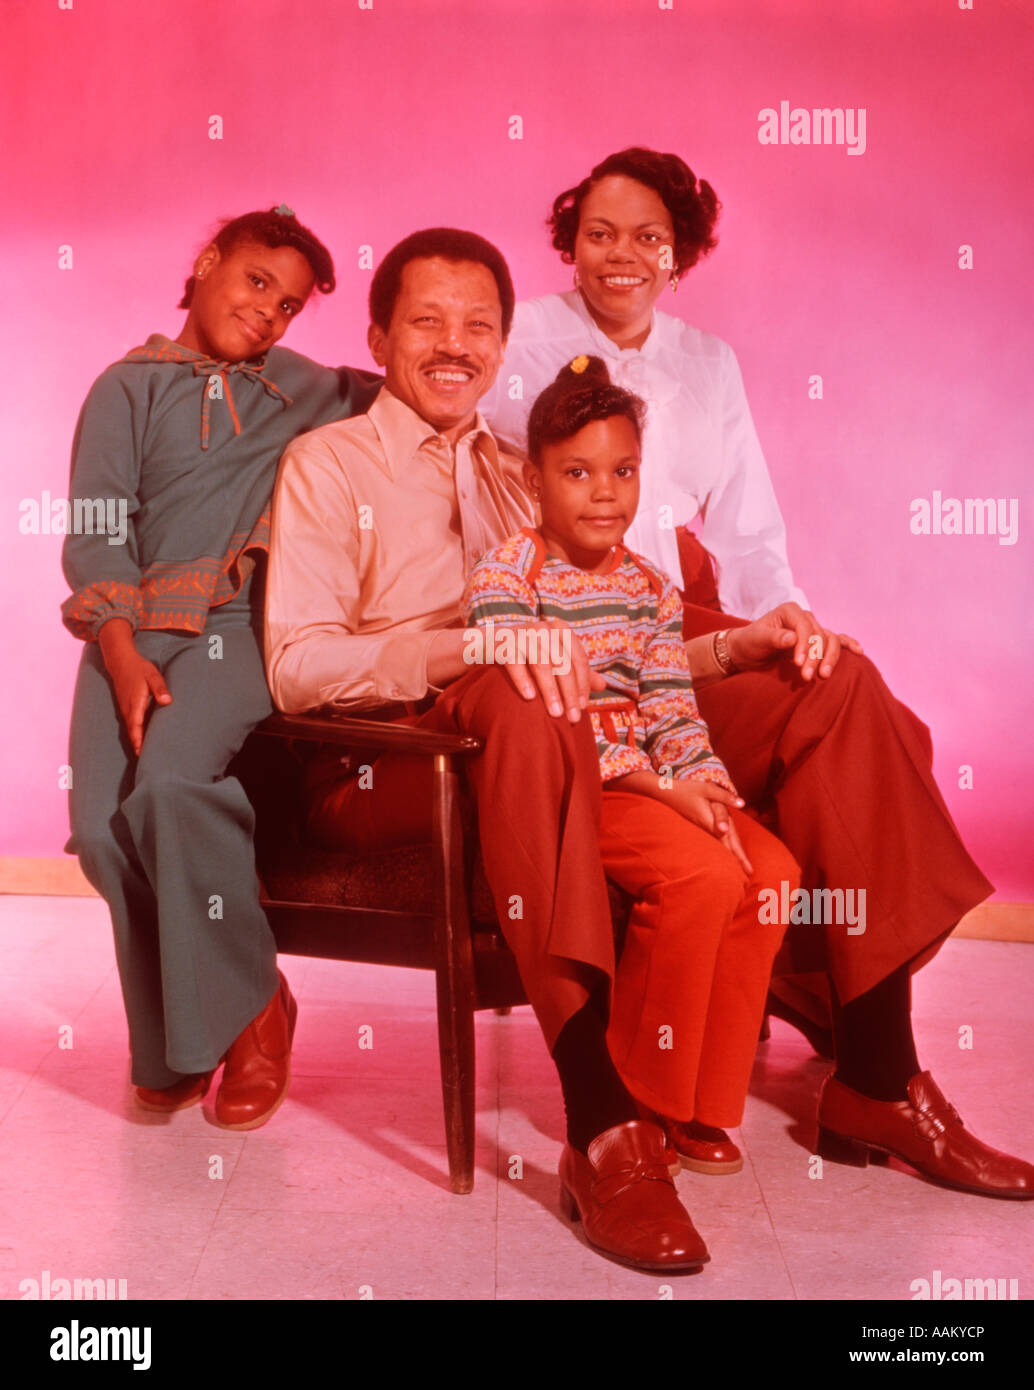 1970s PORTRAIT HAPPY AFRICAN AMERICAN FAMILY - Stock Image